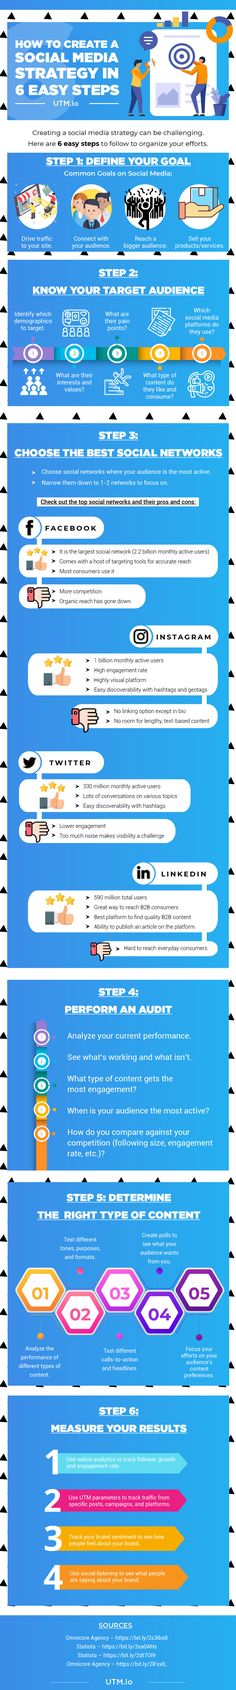 Social Media Essentials: 6 Easy Steps to Create a Killer Strategy [Infographic] Internet Marketing Company, Content Marketing, Online Marketing, Social Media Marketing, Digital Marketing, Marketing Strategies, Marketing Ideas, Social Media Daily, Le Social